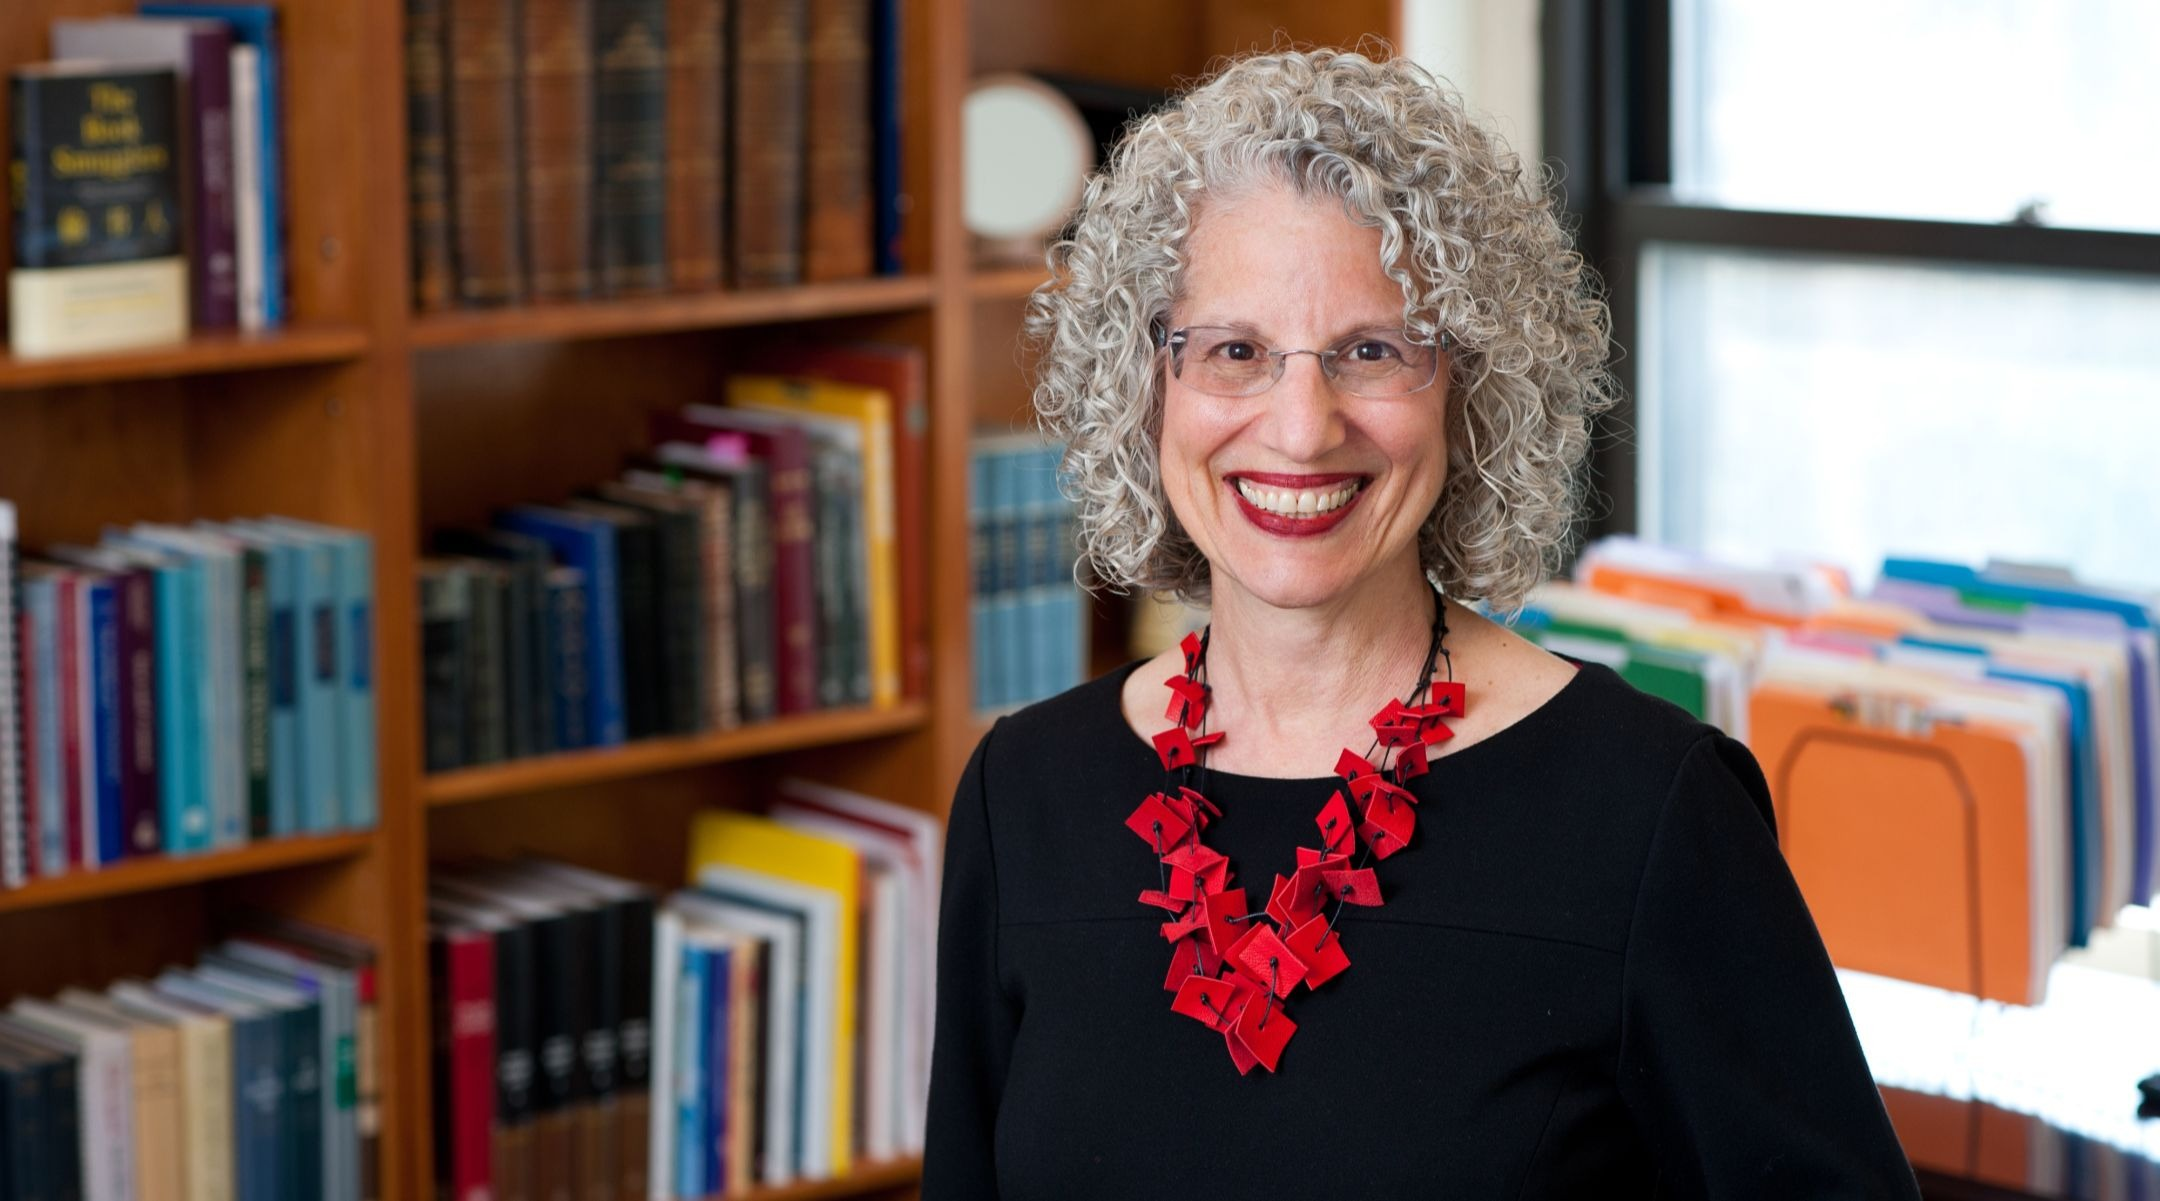 Shuly Rubin Schwartz tapped as first woman chancellor at Jewish Theological Seminary